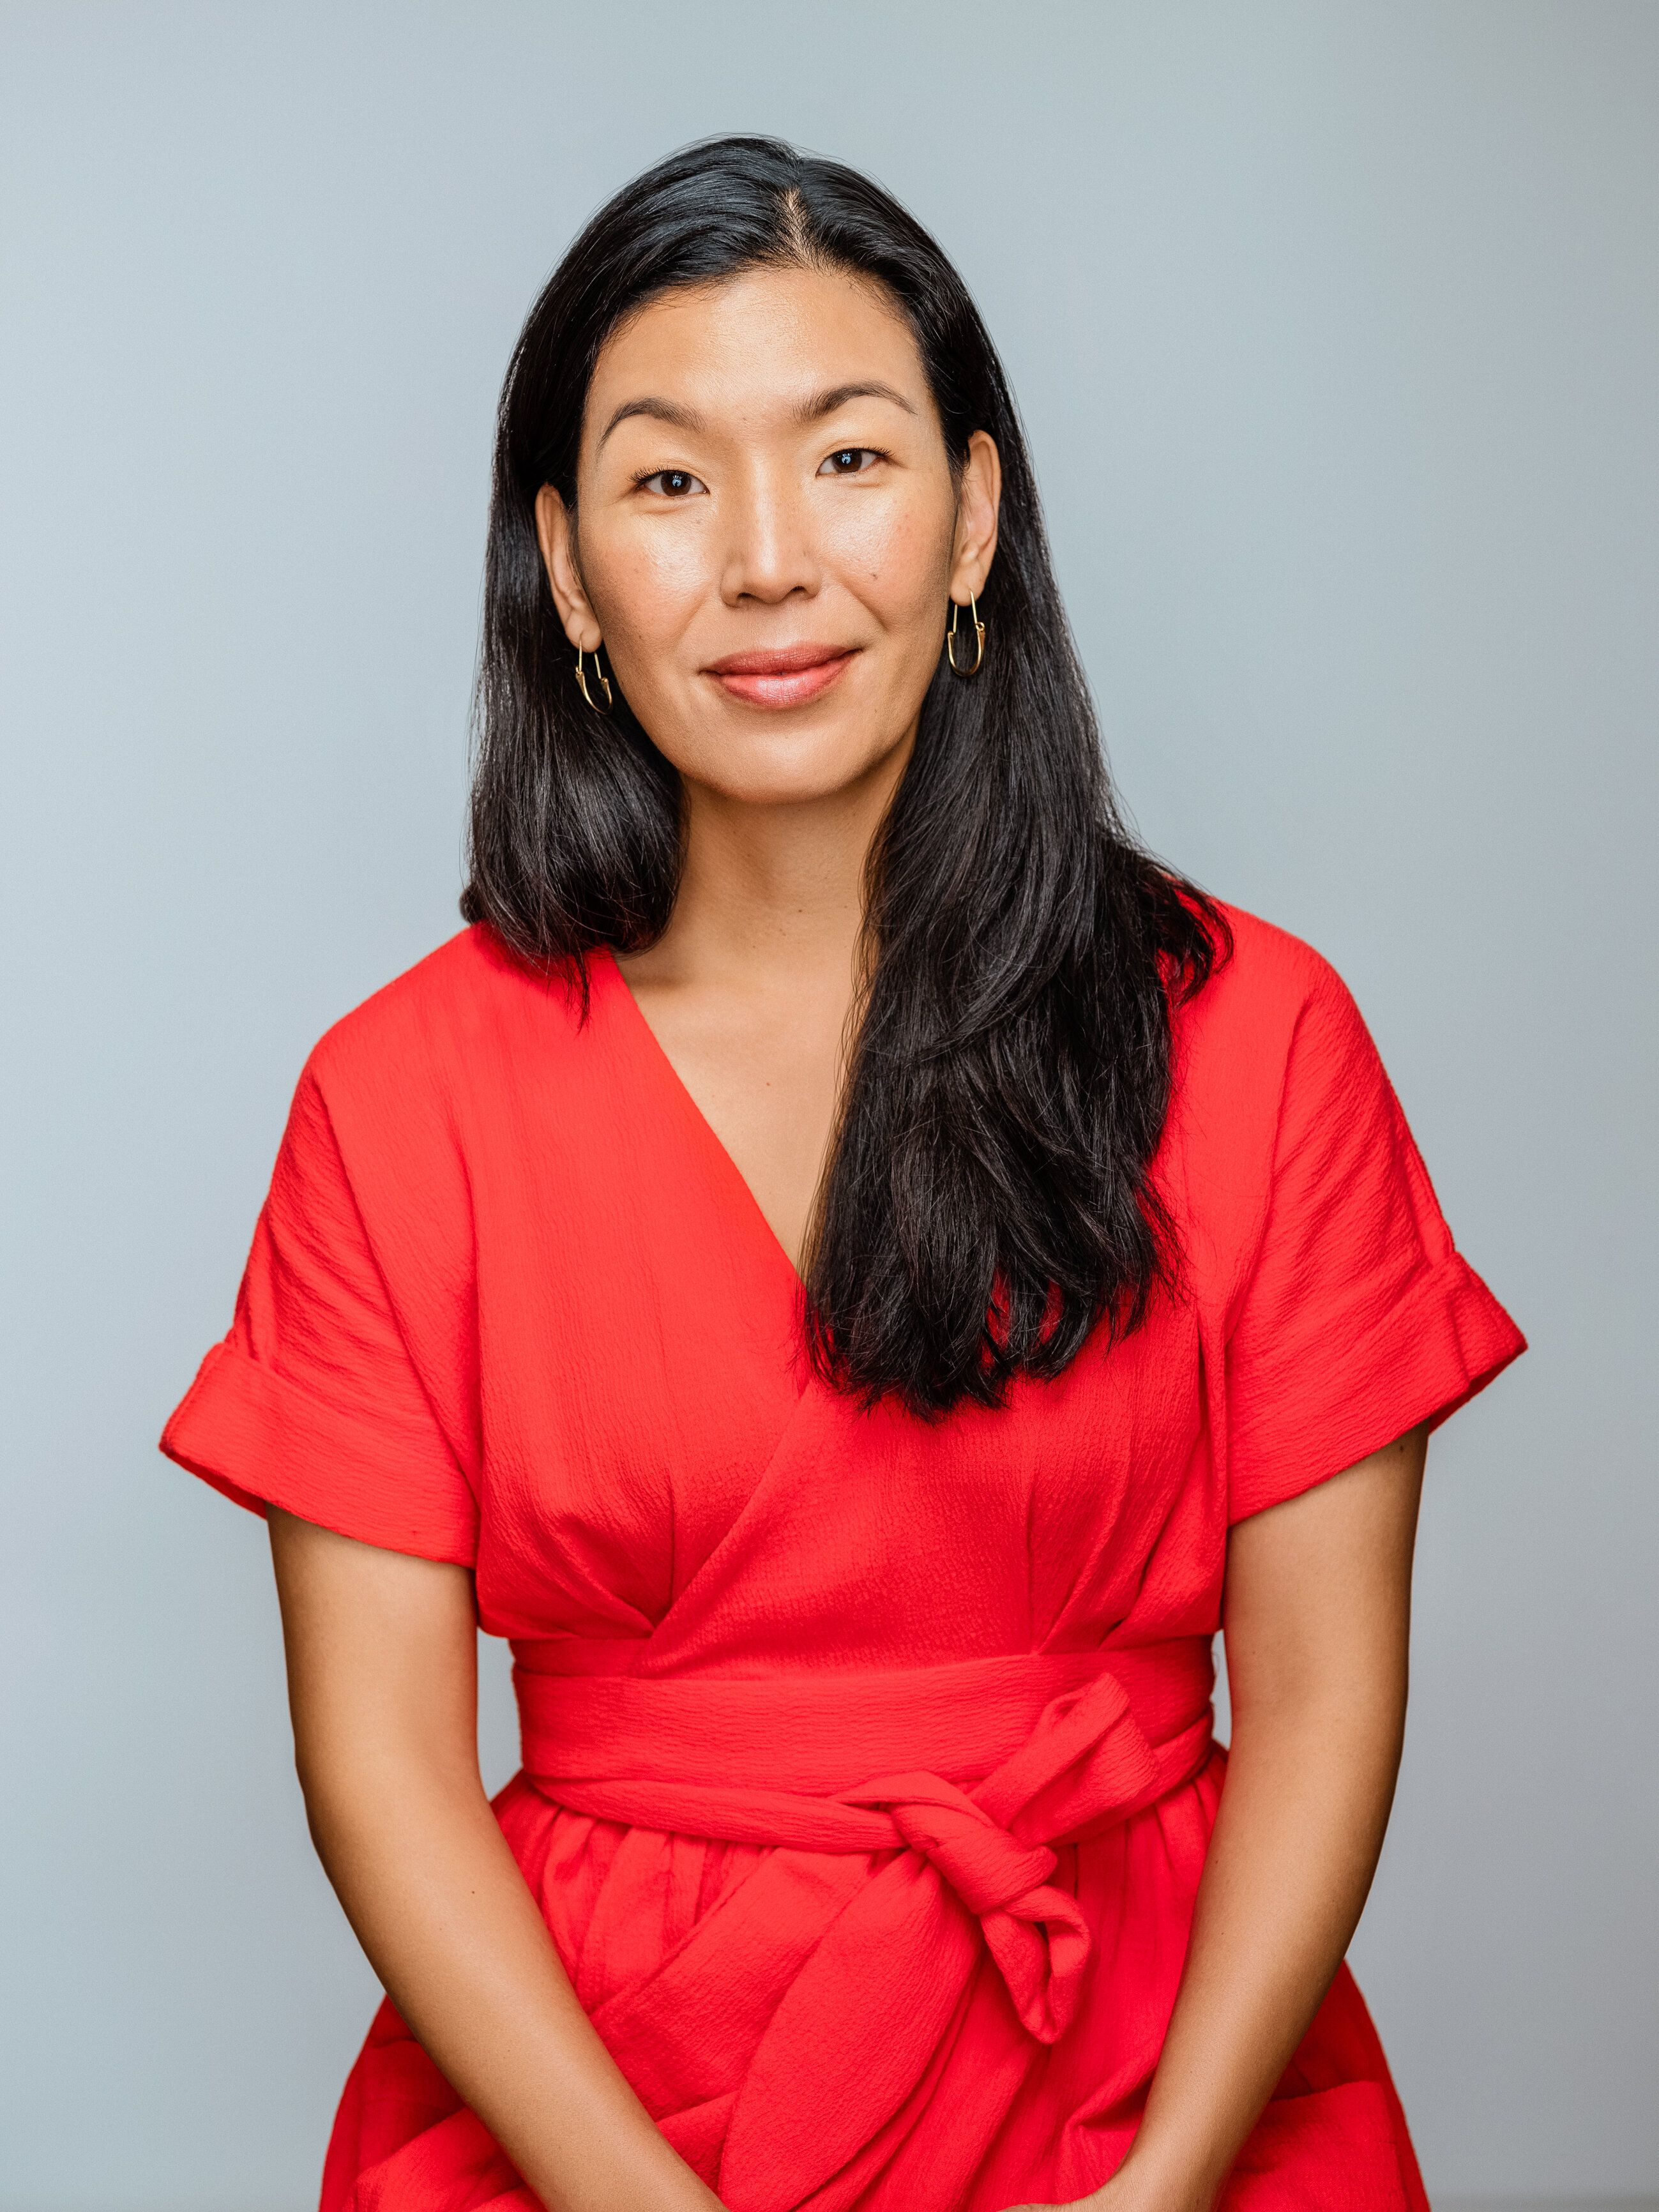 Ai-jen Poo is the executive director of the National Domestic Workers Alliance, director of Caring Across Generations, co-Fou